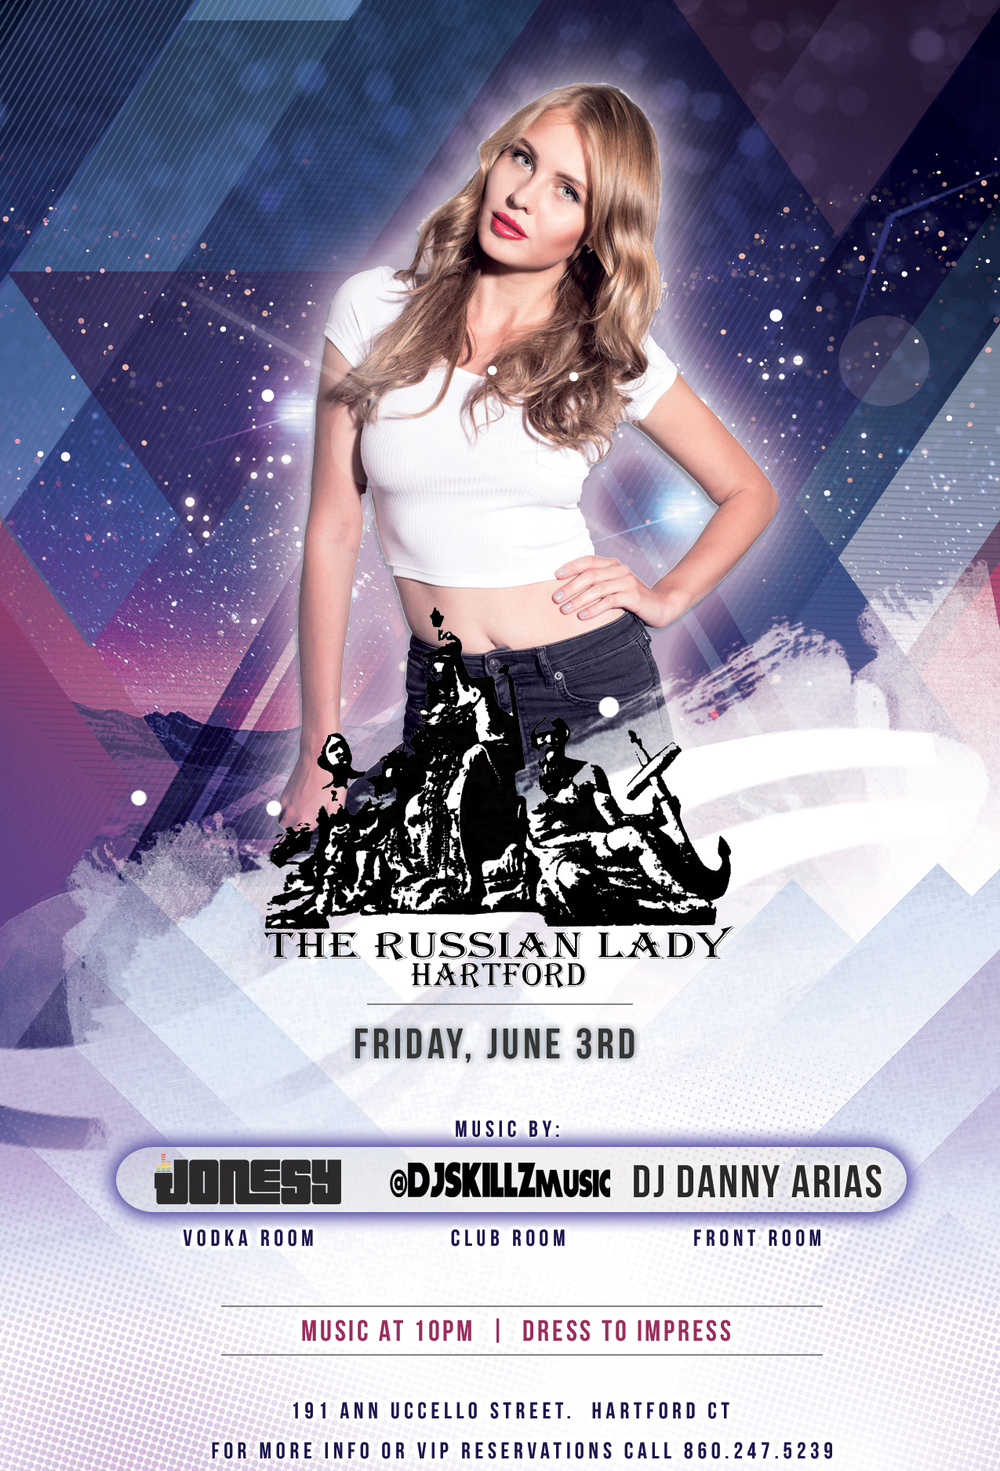 Friday, June 4th join us at The Russian Lady in Hartford, CT as I make my return to the Vodka Room.  Music by DJ Skillz, DJ Danny Arias + Myself starts at 10pm.  Be there early to avoid a line!